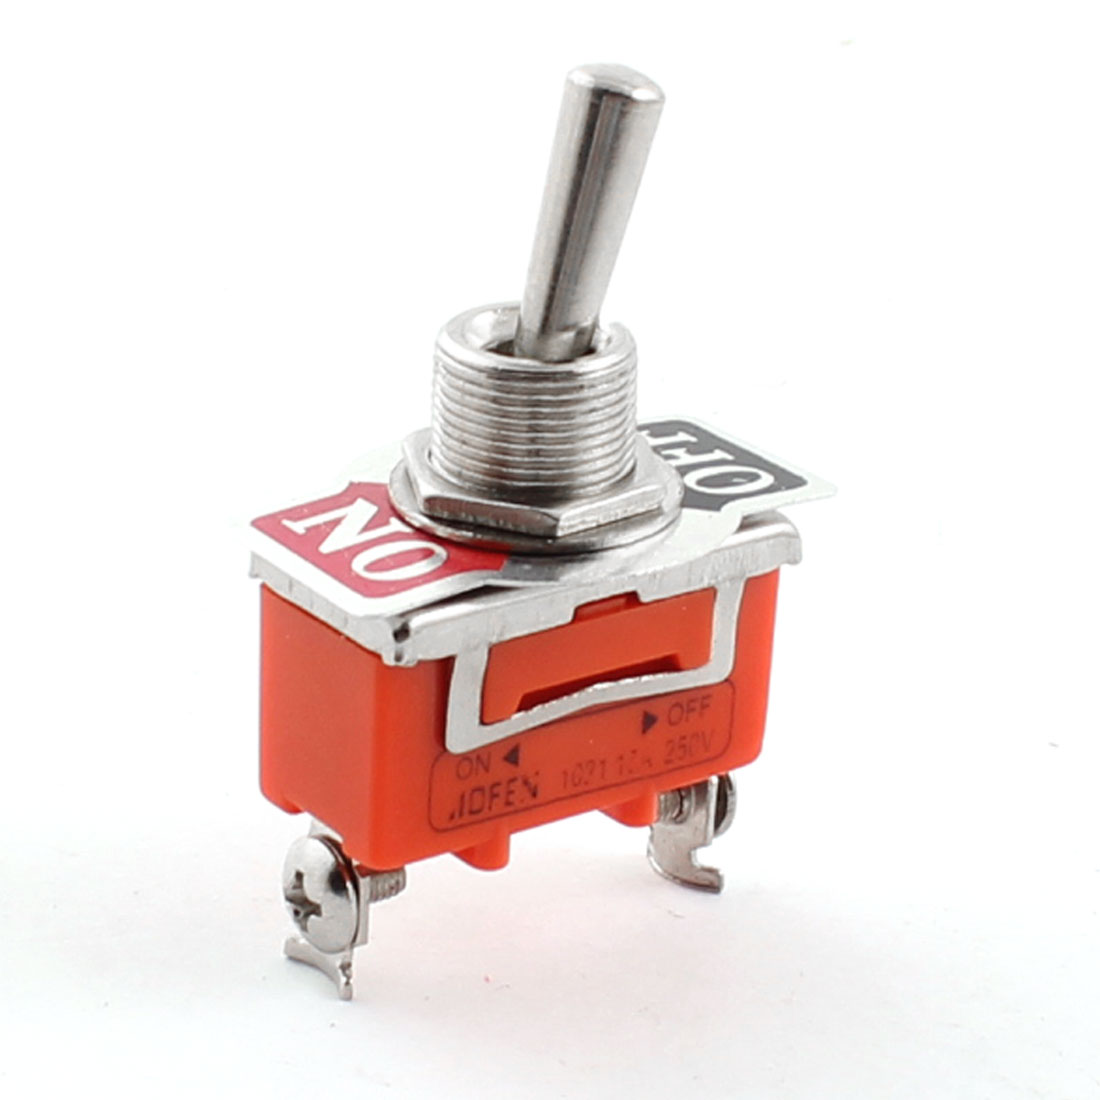 ON-OFF 12mm Thread Diameter 2 Position 2-Terminals SPST Toggle Switch AC 250V 15A